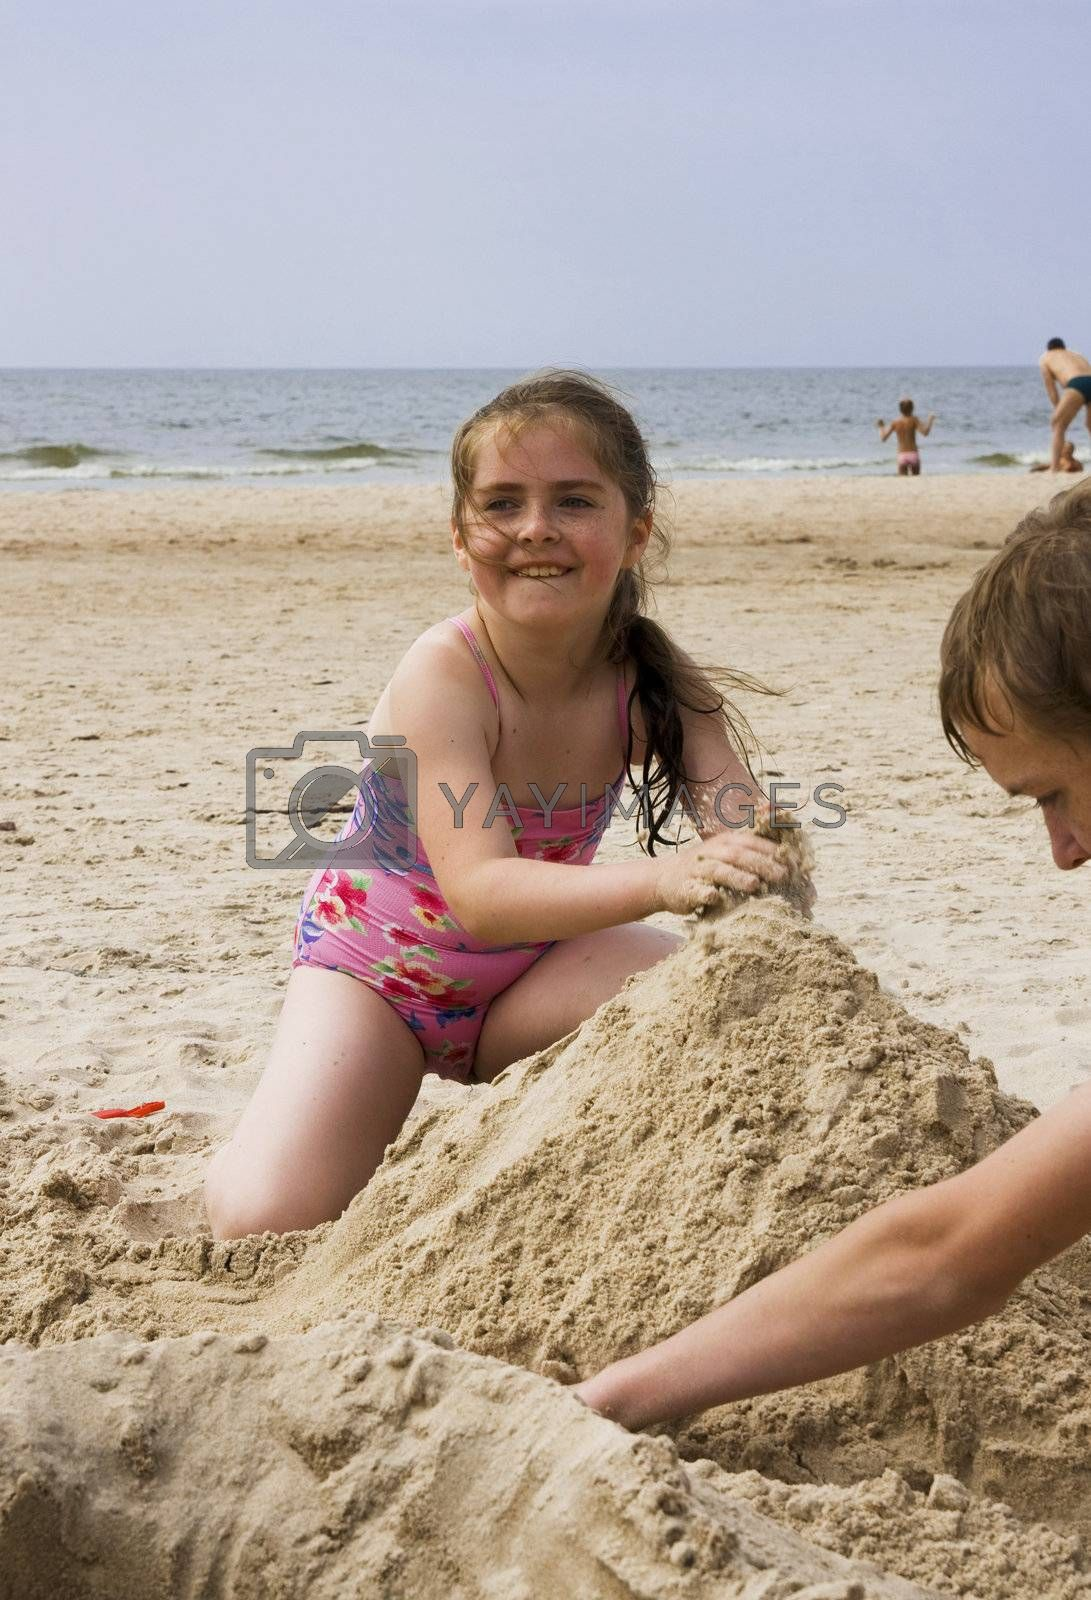 Happy smiling girl playing on beach sand. Lithuania, coast of Baltic sea